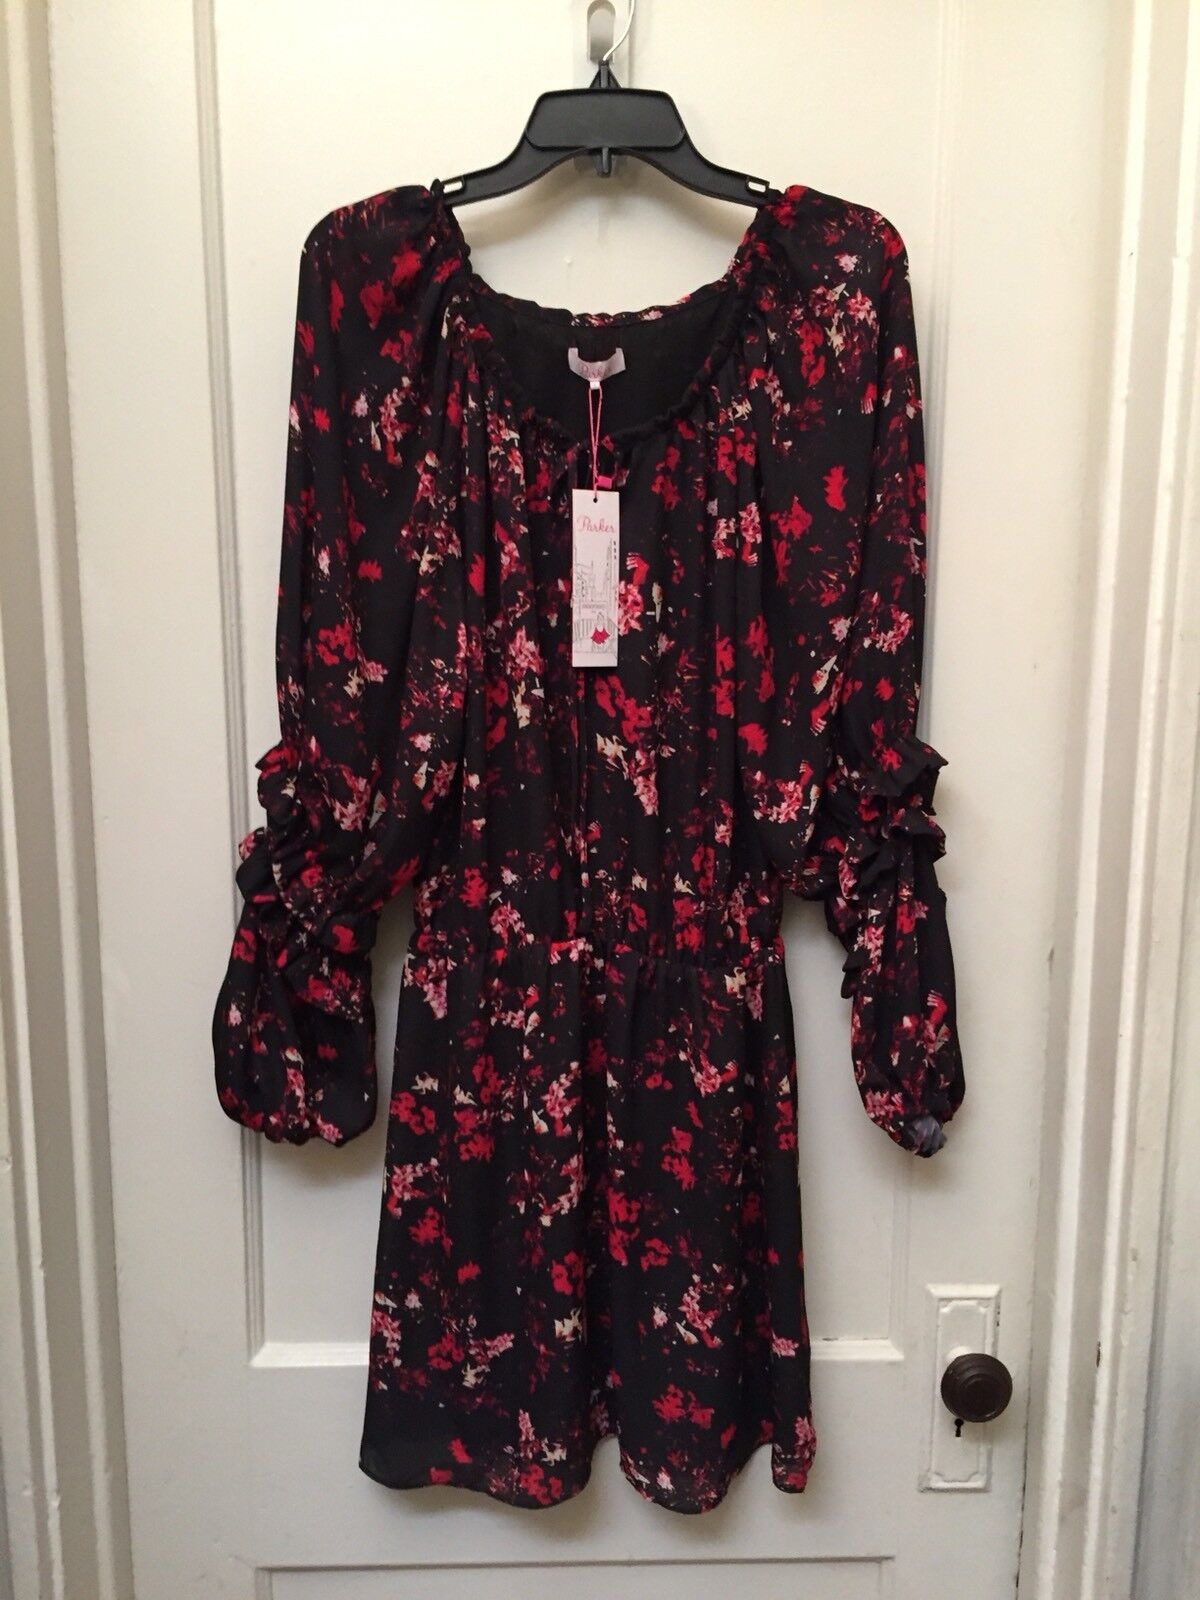 PARKER LONG SLEEVE FLORAL RUFFLED DRESS NEW SIZE S  288.00